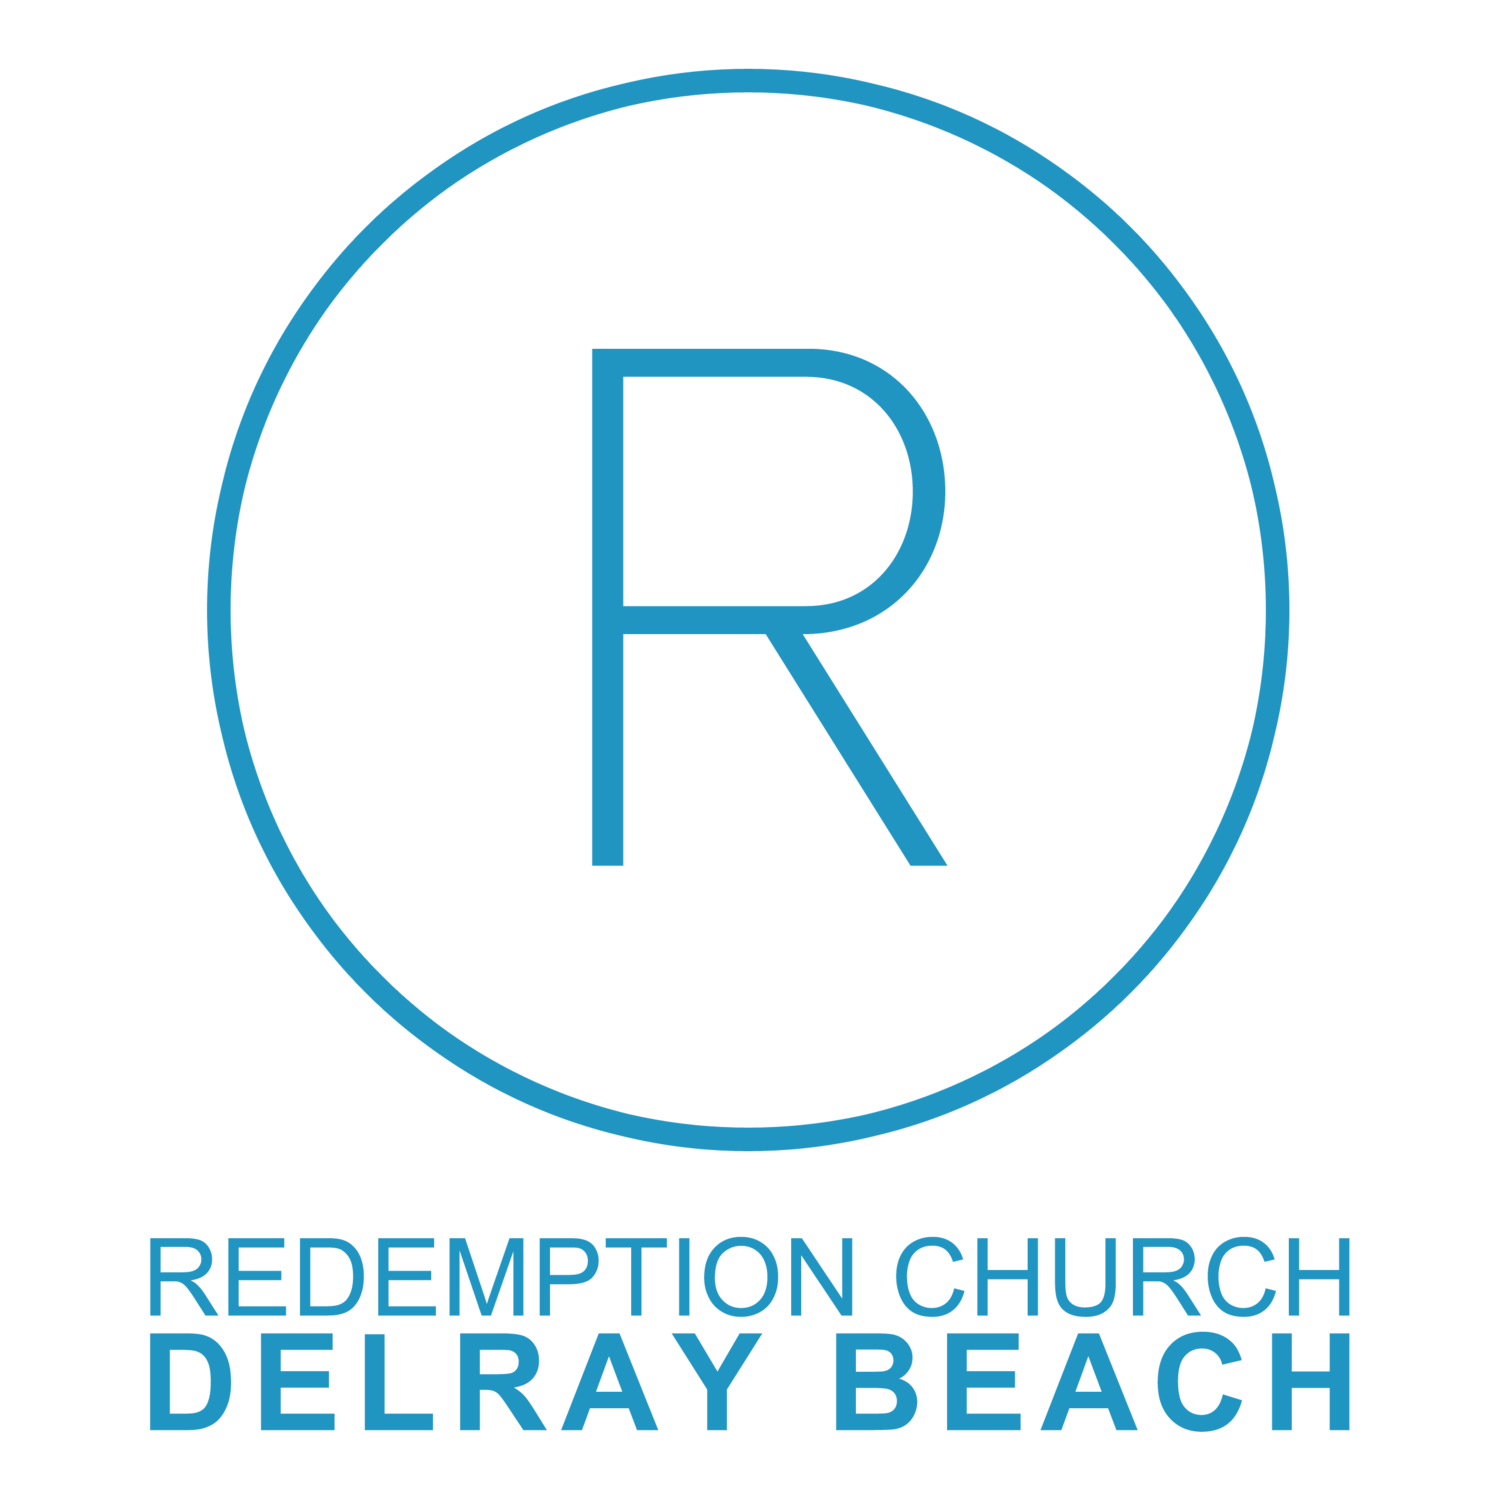 Redemption Church Delray Beach